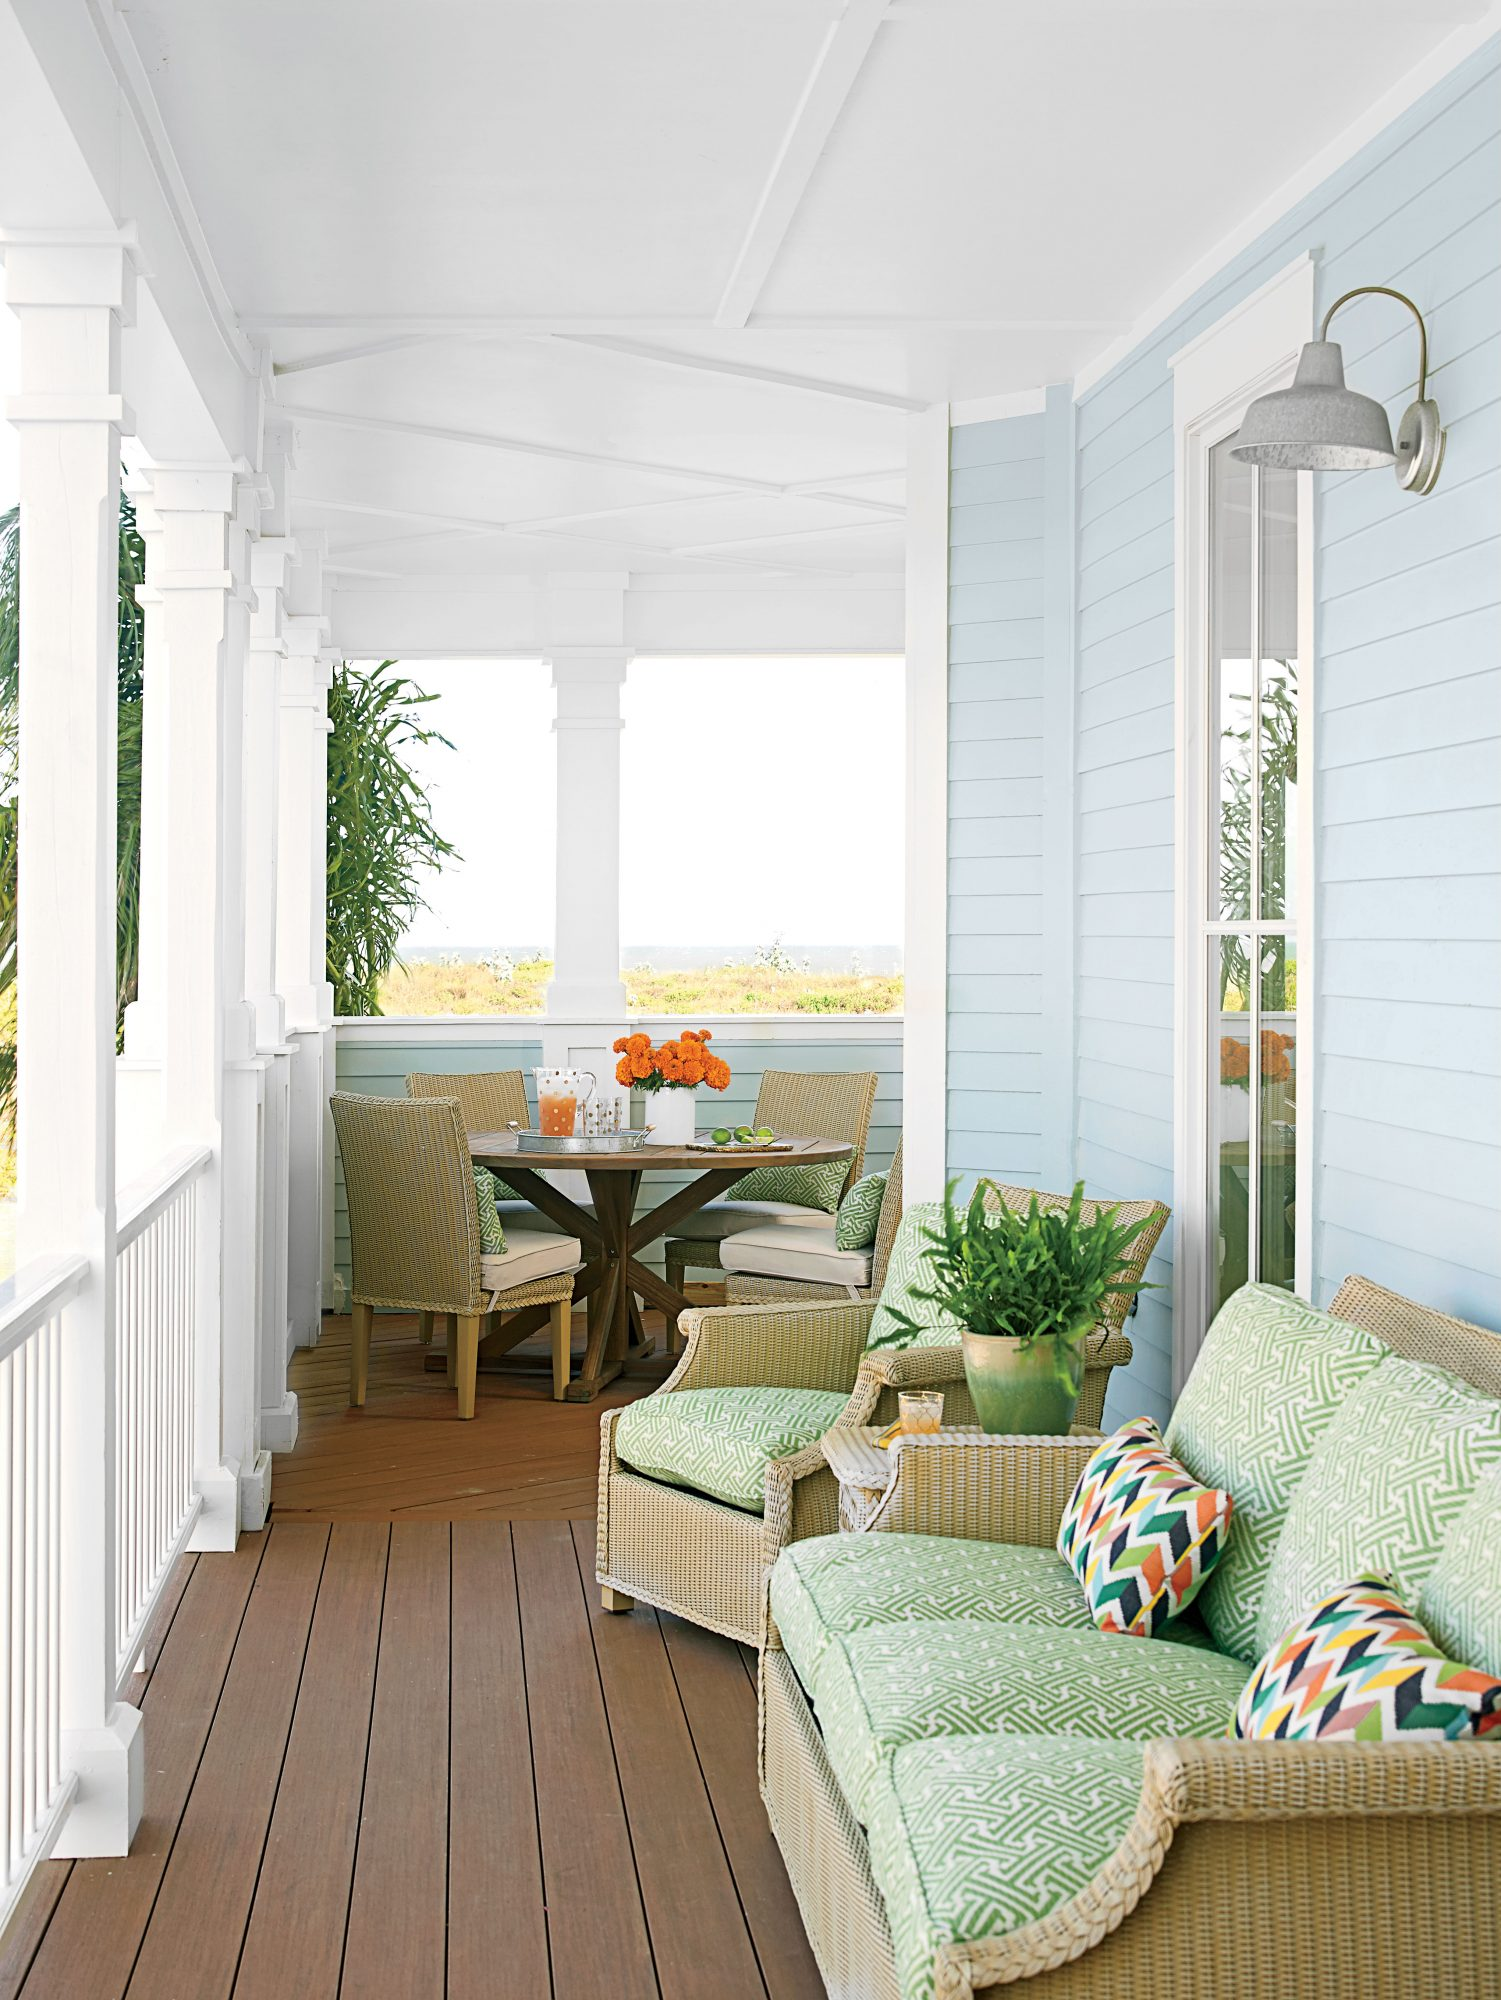 The deck of our Cinnamon Shore, Texas, Showhouse has it all: a perfectly situated dining nook and a cozy conversation nook. The green Sunbrella fabric mingles softly with the pale blue exterior walls, and punchy geometric throw pillows enliven the space.